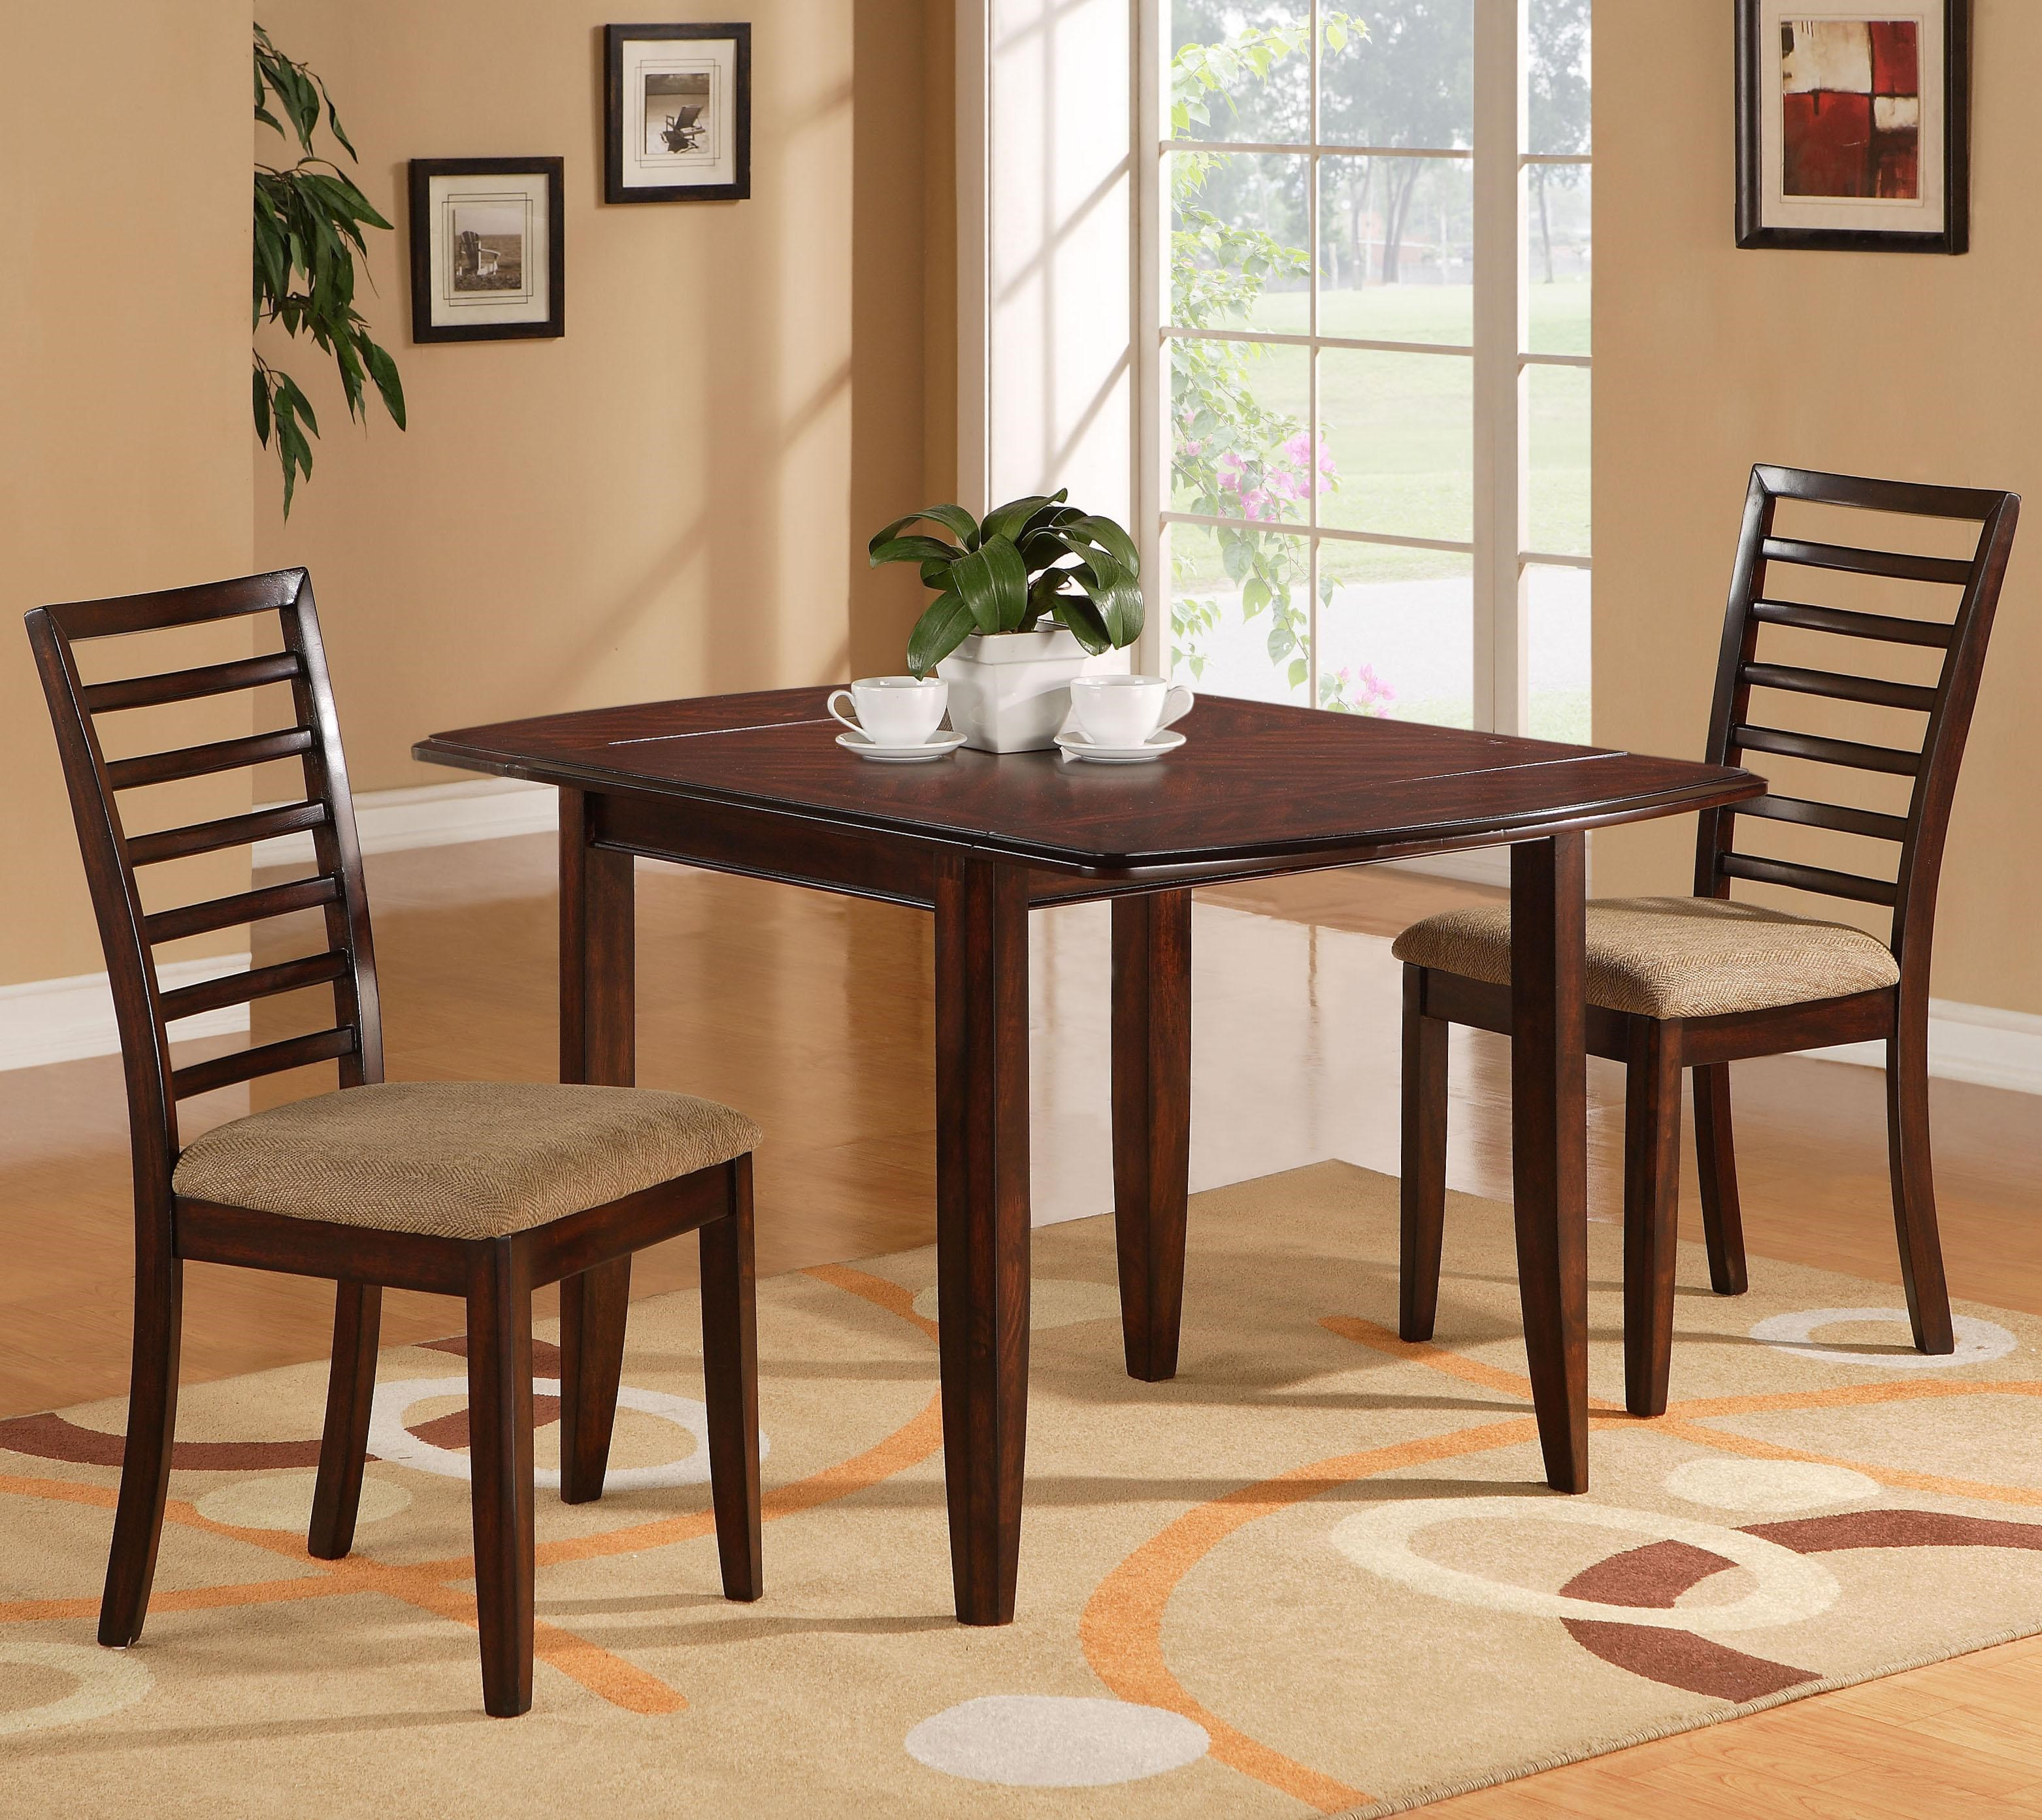 table and 2 chairs cheap vingli fishing chair ivan walker s furniture dining 3 piece set holland house ivanivan